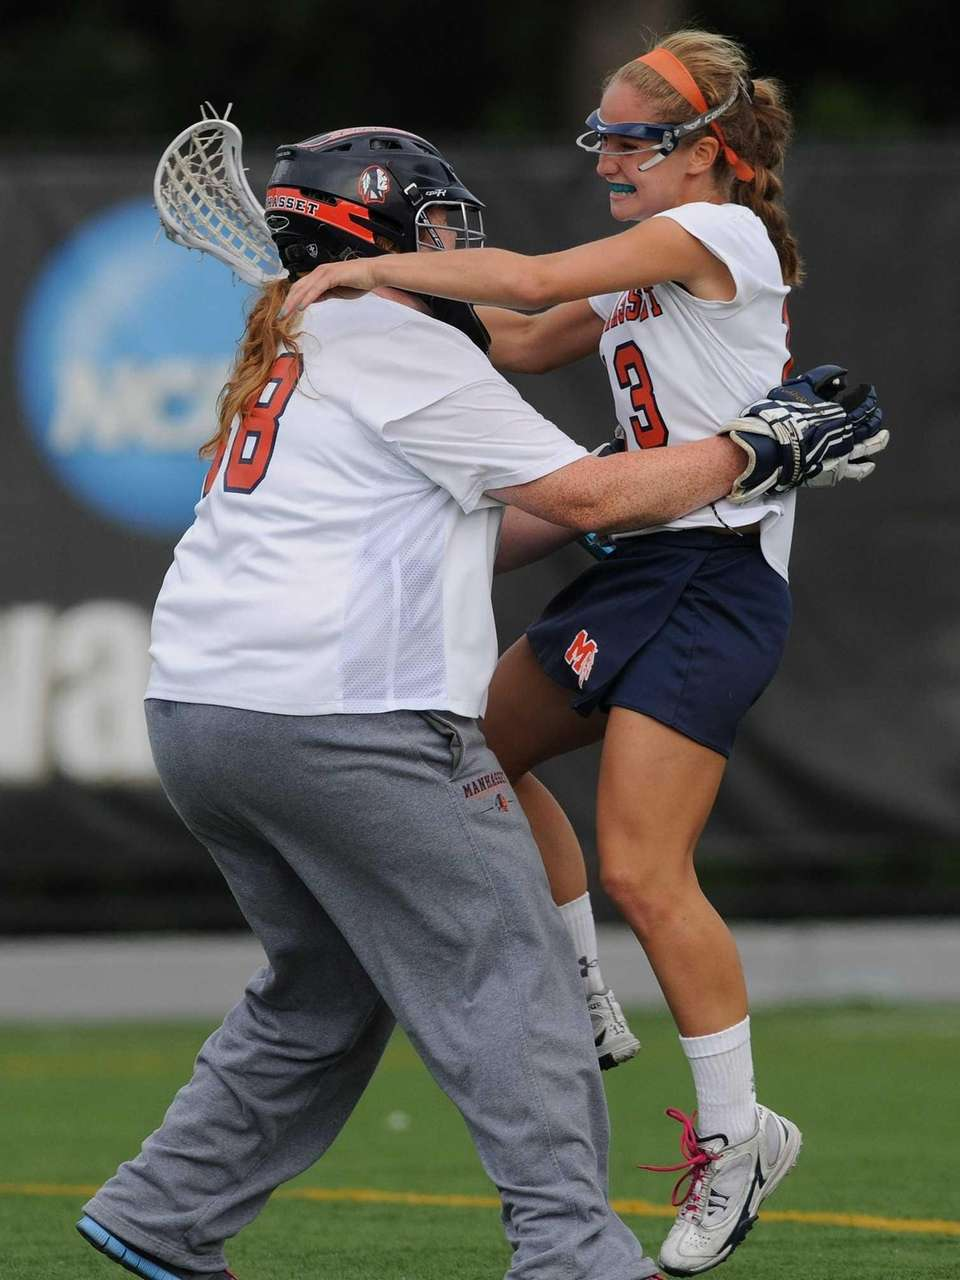 Manhasset goalie Erin Coleman, left, and Madison Molinari